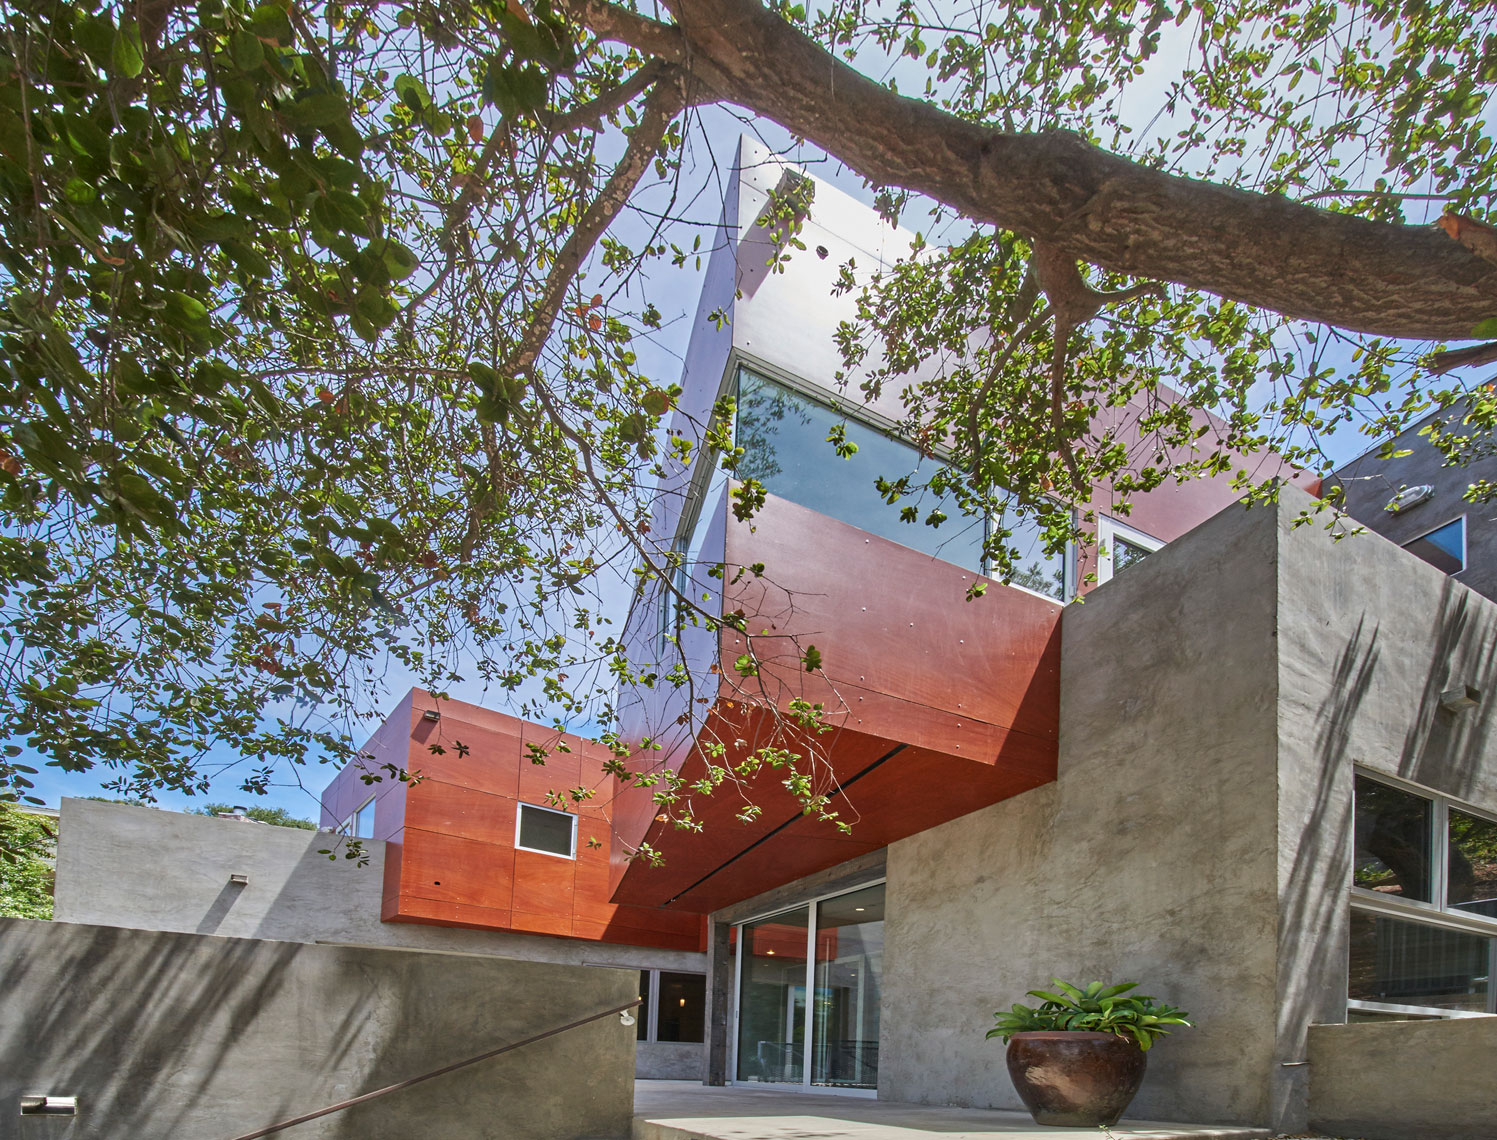 Architectural-photography-of-exterior-front-side-view-of-contemporary-home-Joe-Atlas-architectural-photographer-Los-Angeles.